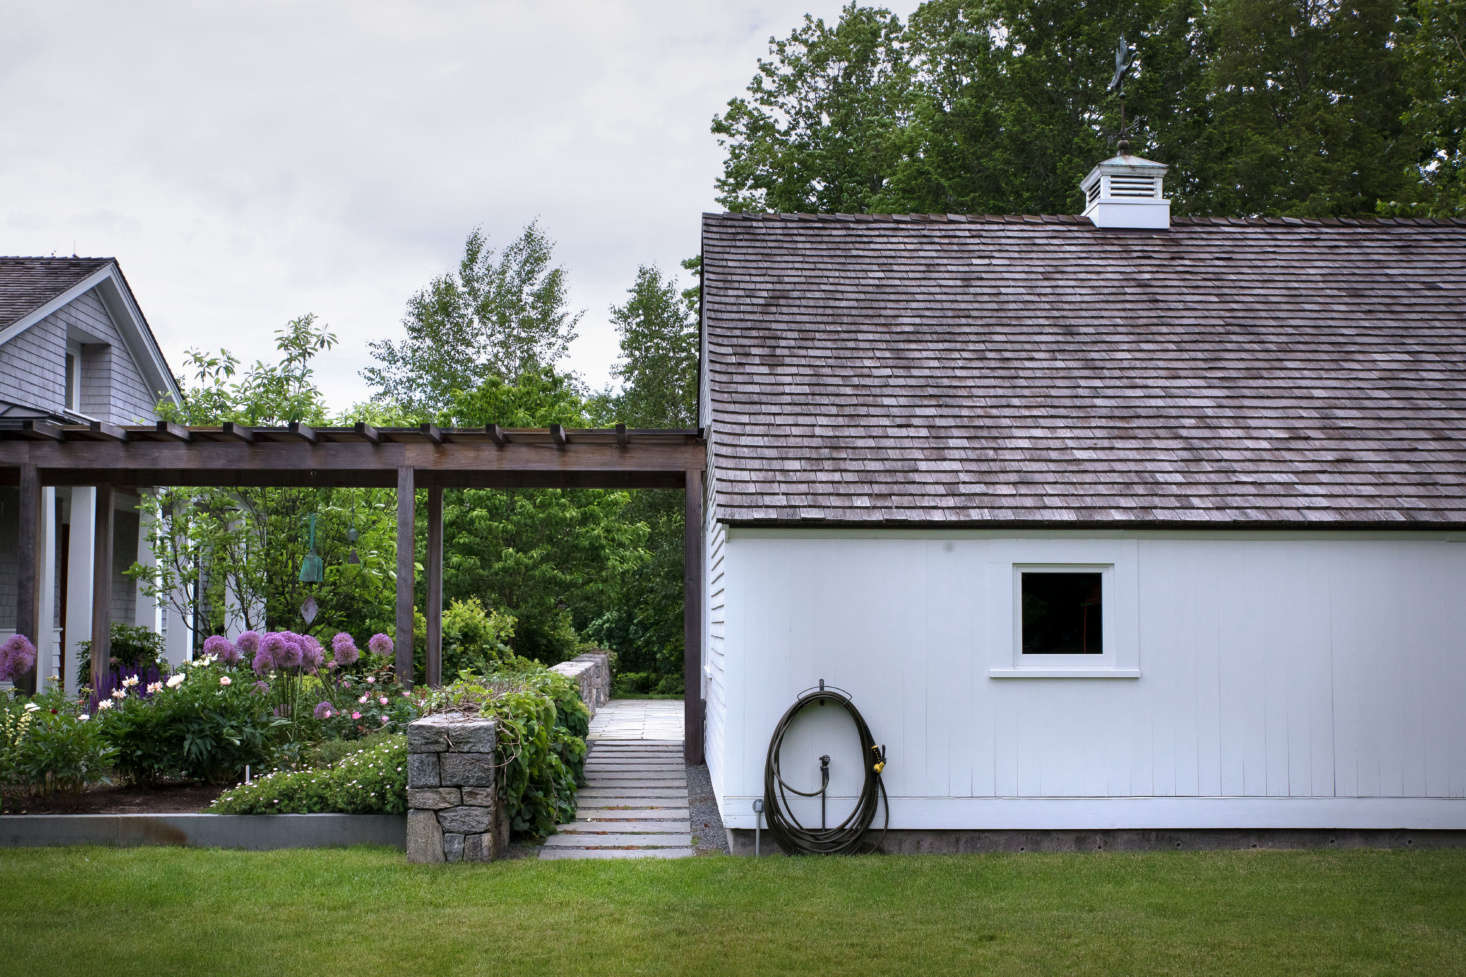 10 Things Nobody Tells You About Garage Design Gardenista